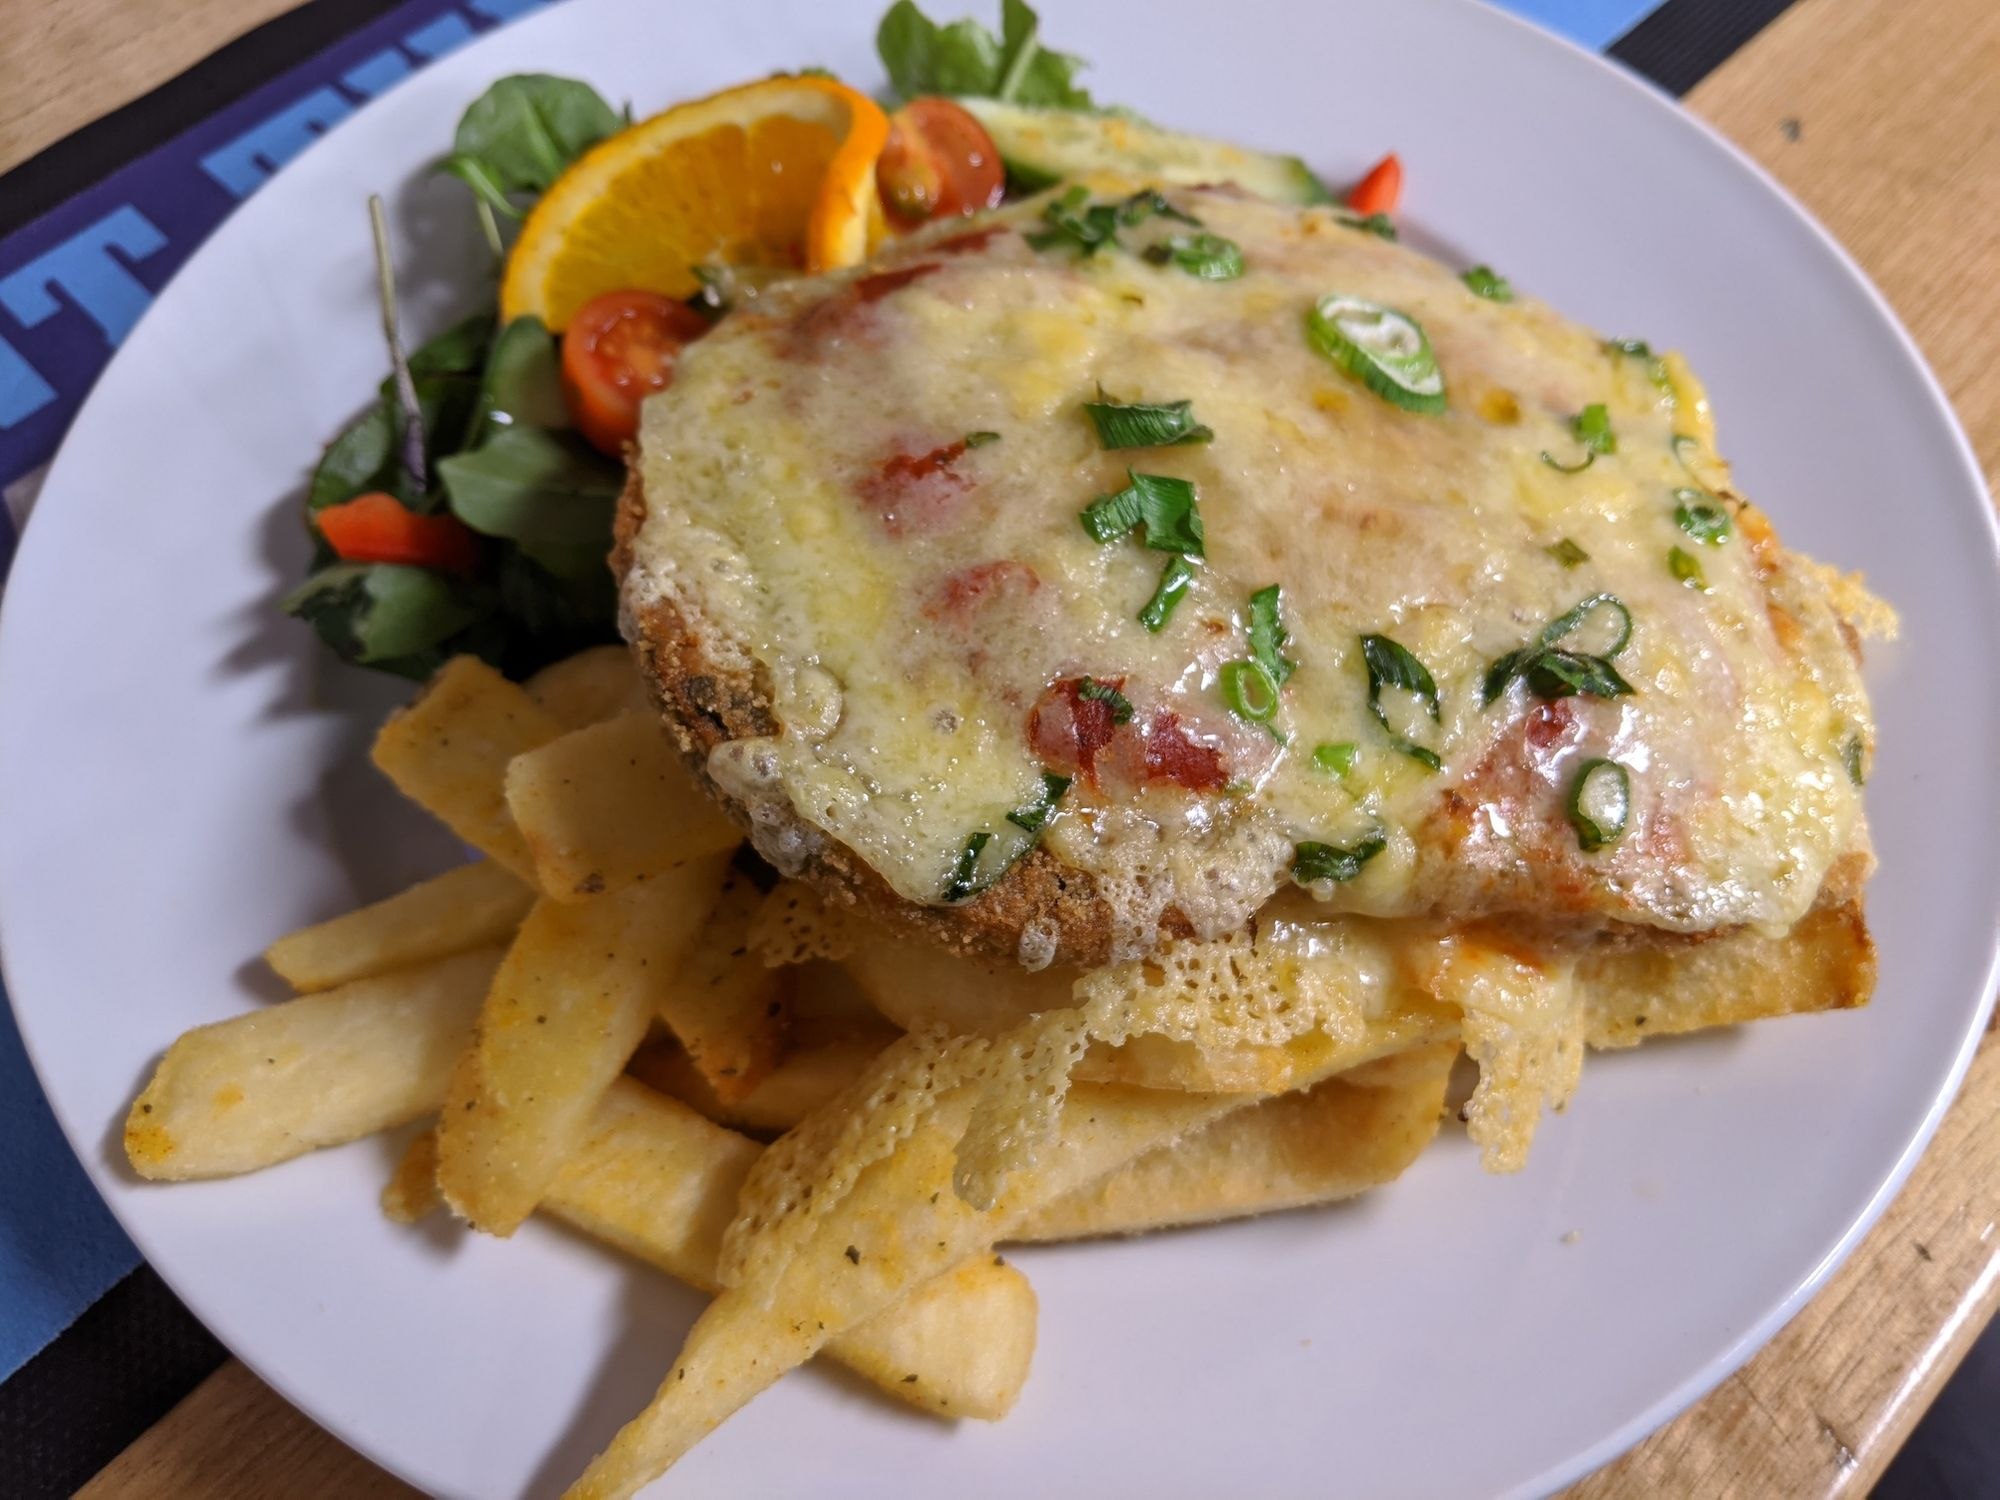 Vegetarian Parmigiana on plate with salad and chips.